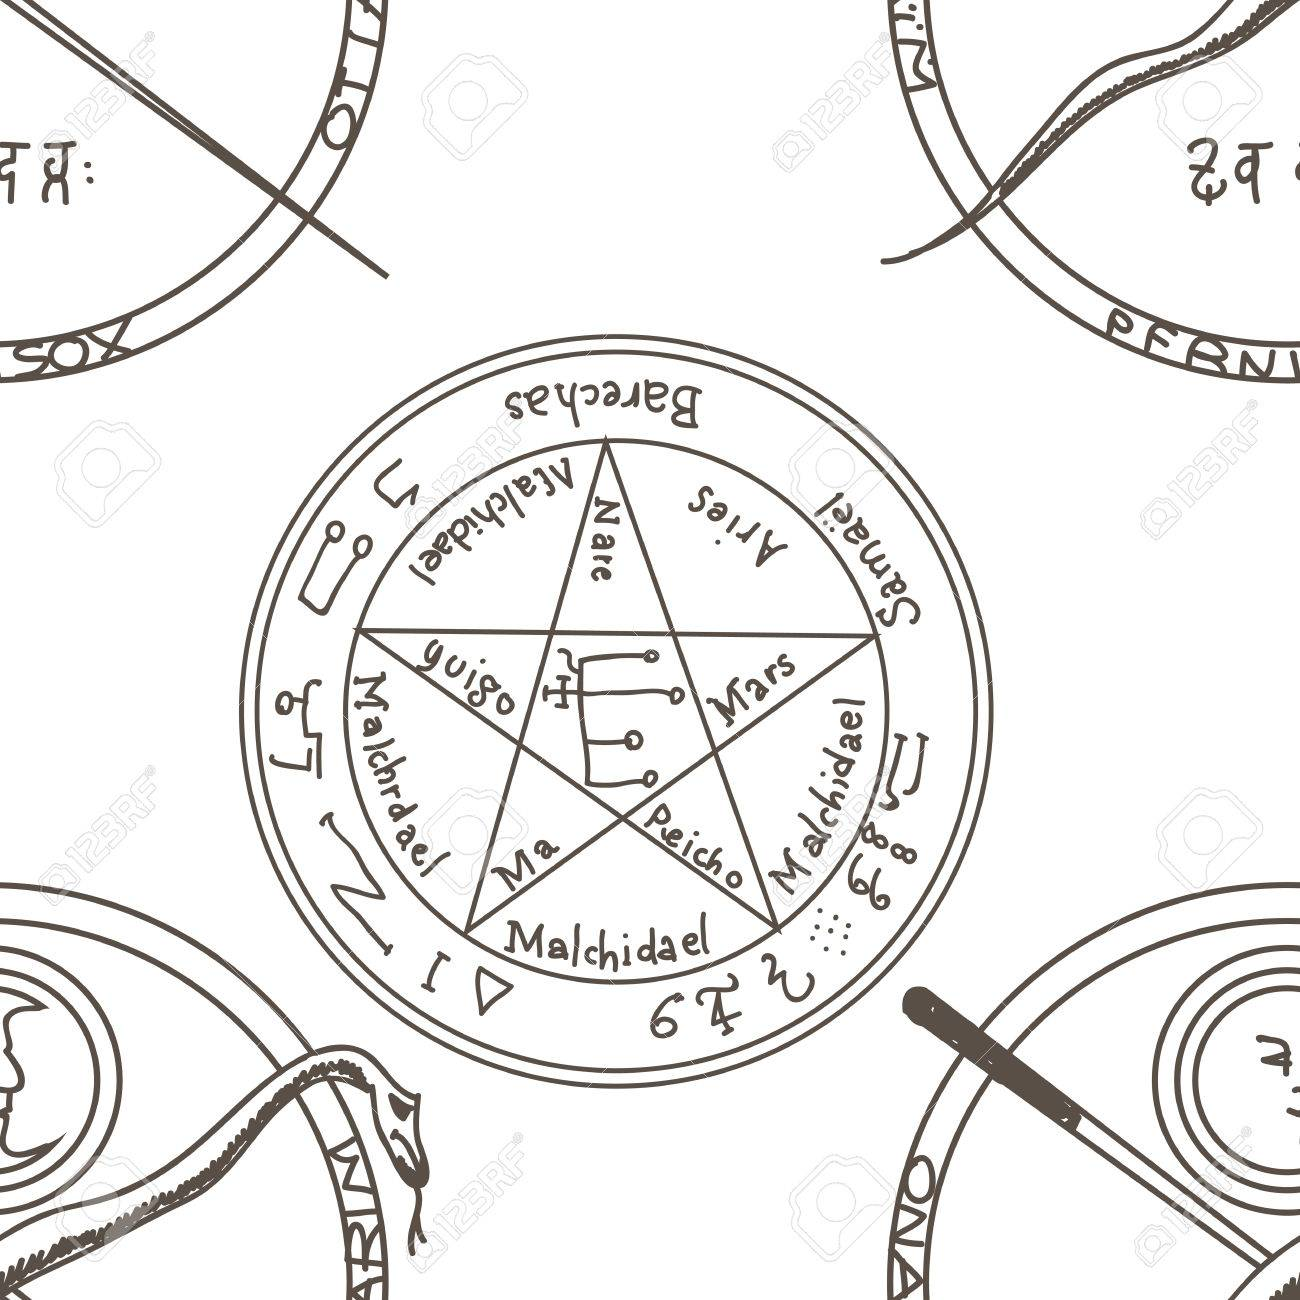 Magical Occult Diagram Diy Enthusiasts Wiring Diagrams